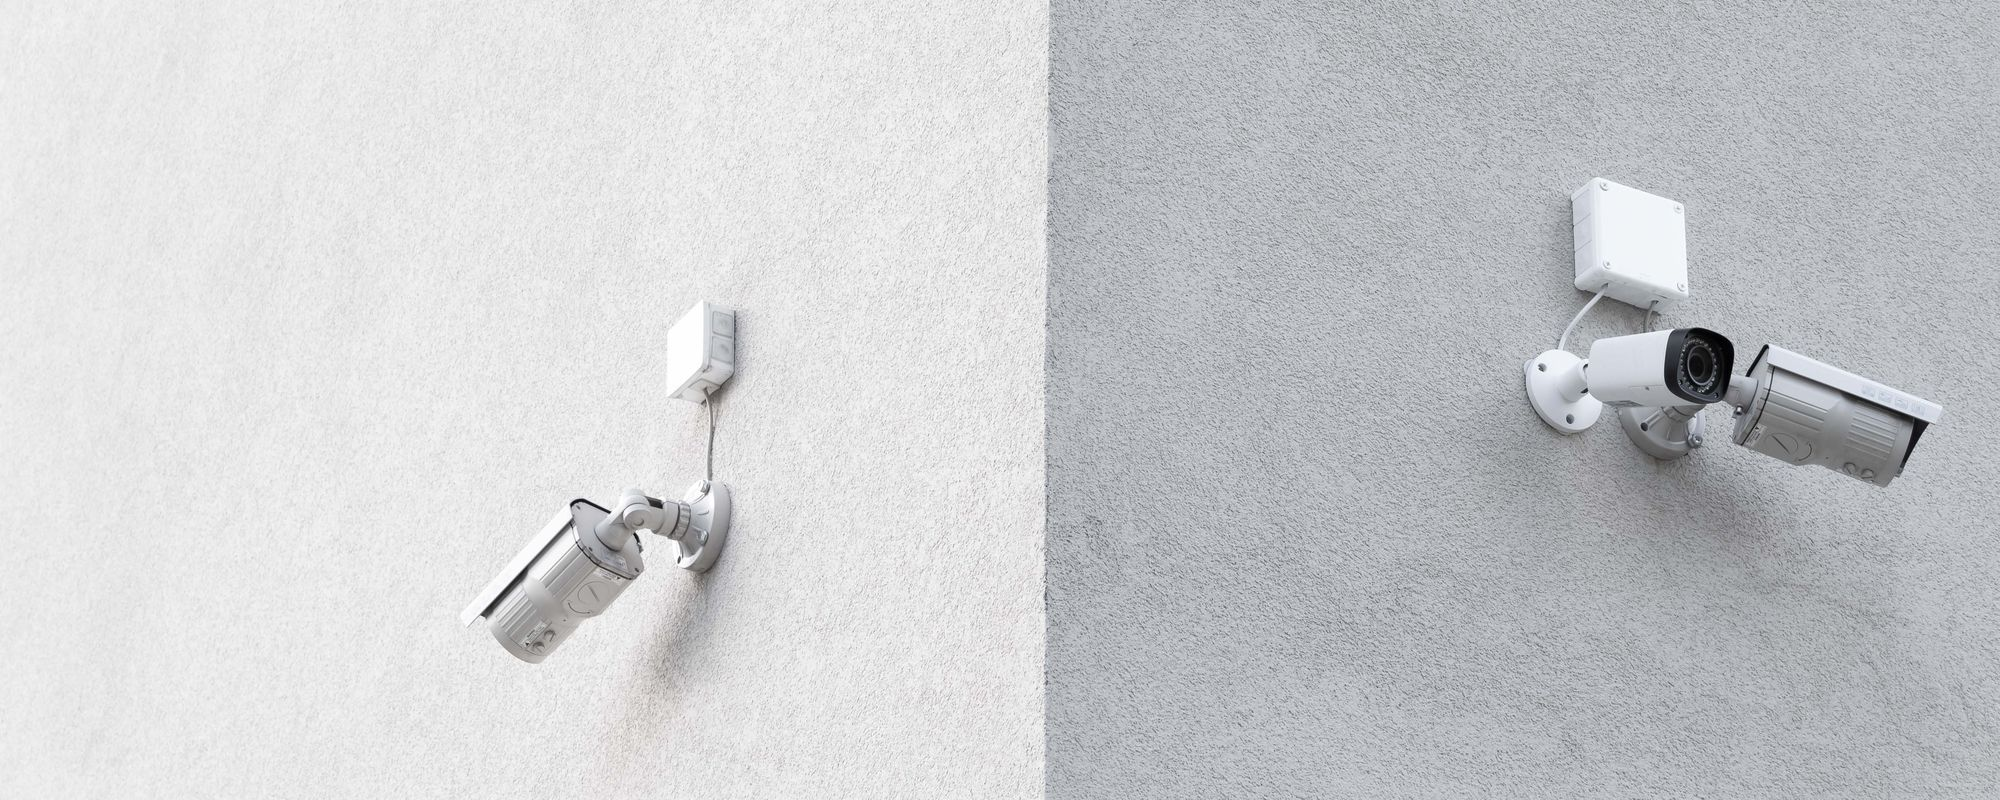 CCTV cameras mounted on wall